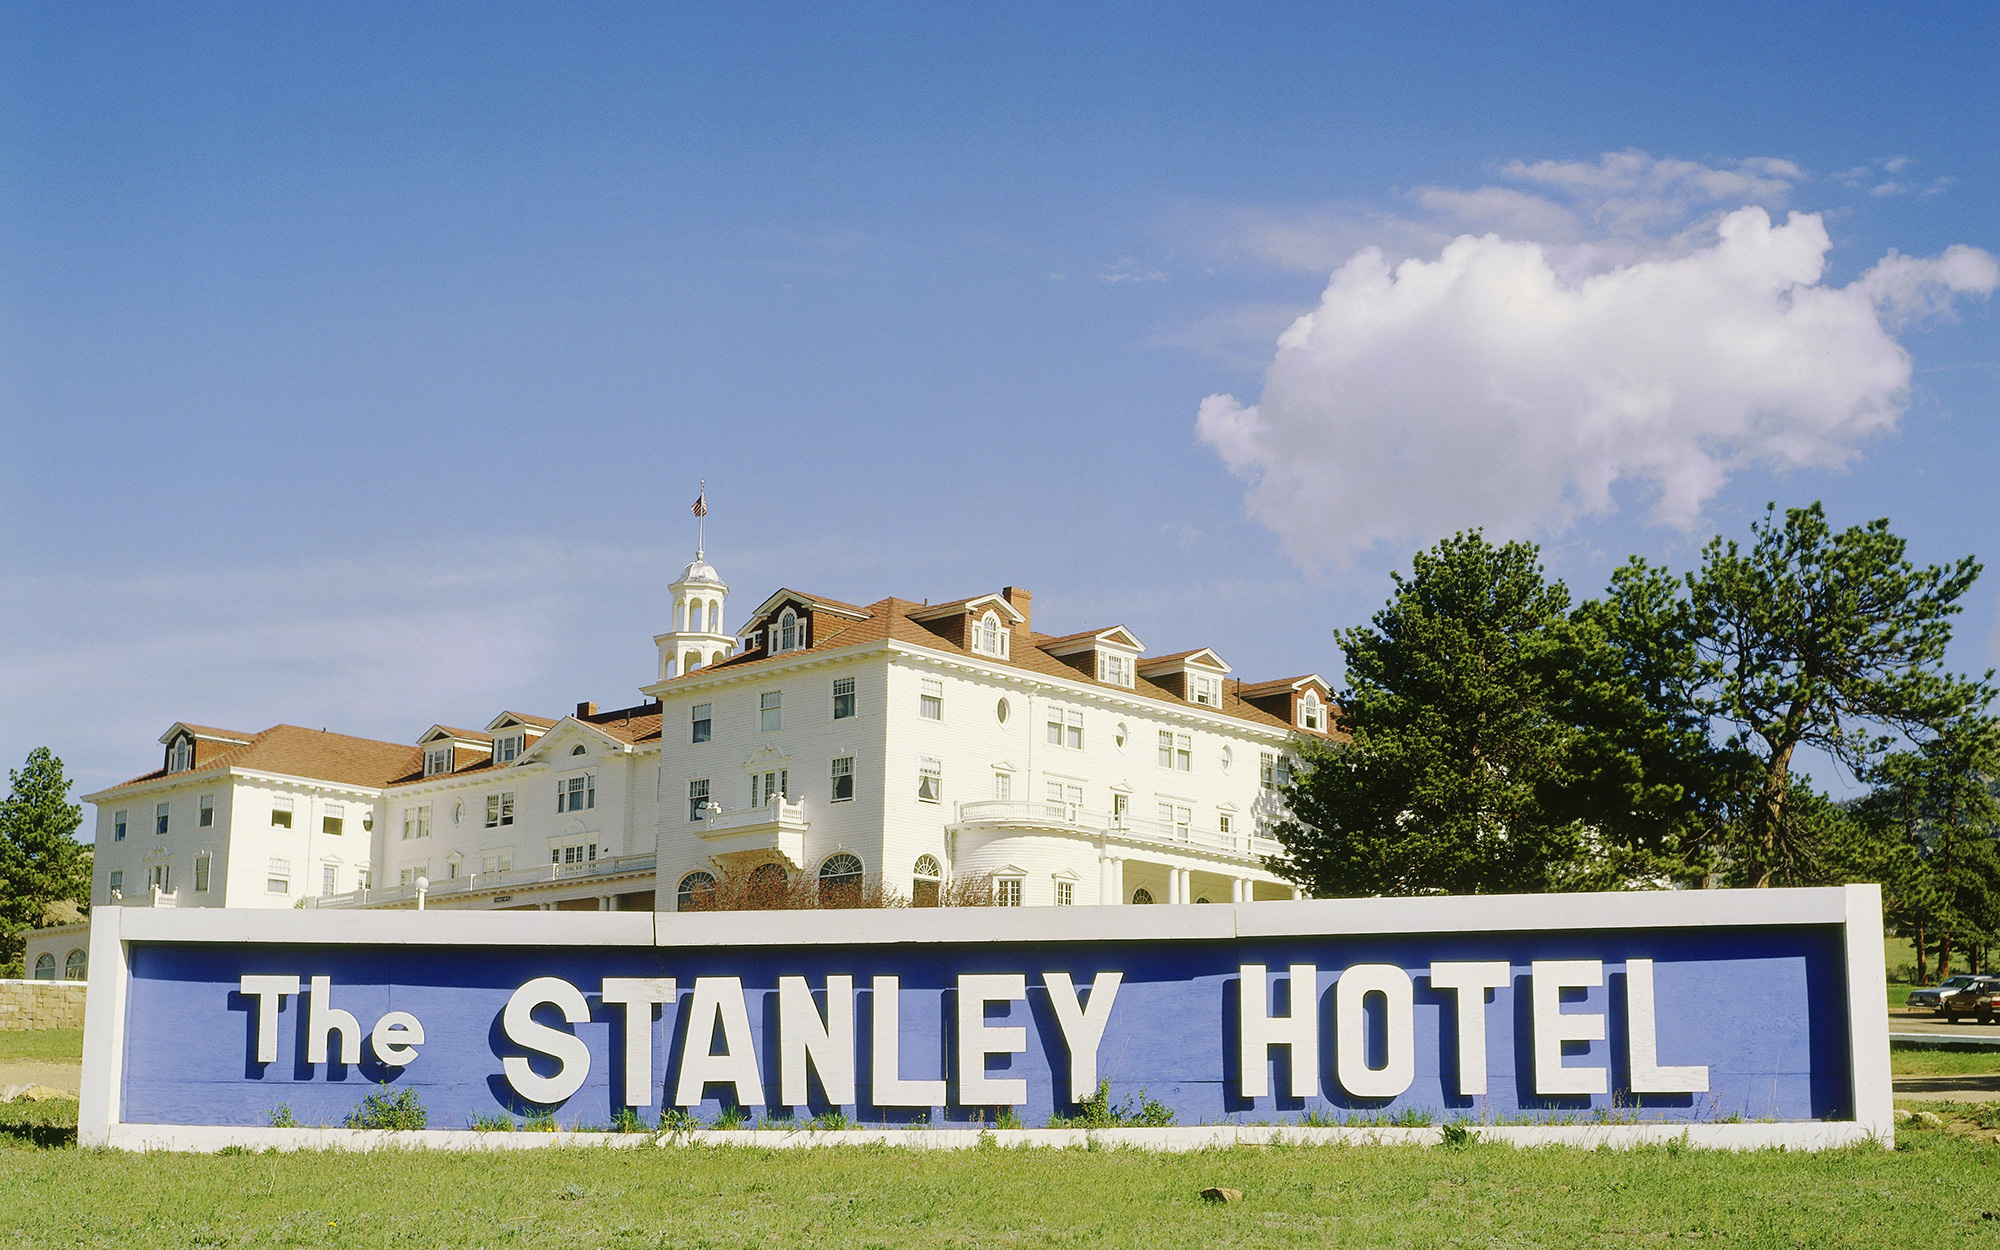 The sign in front of the Stanley Hotel